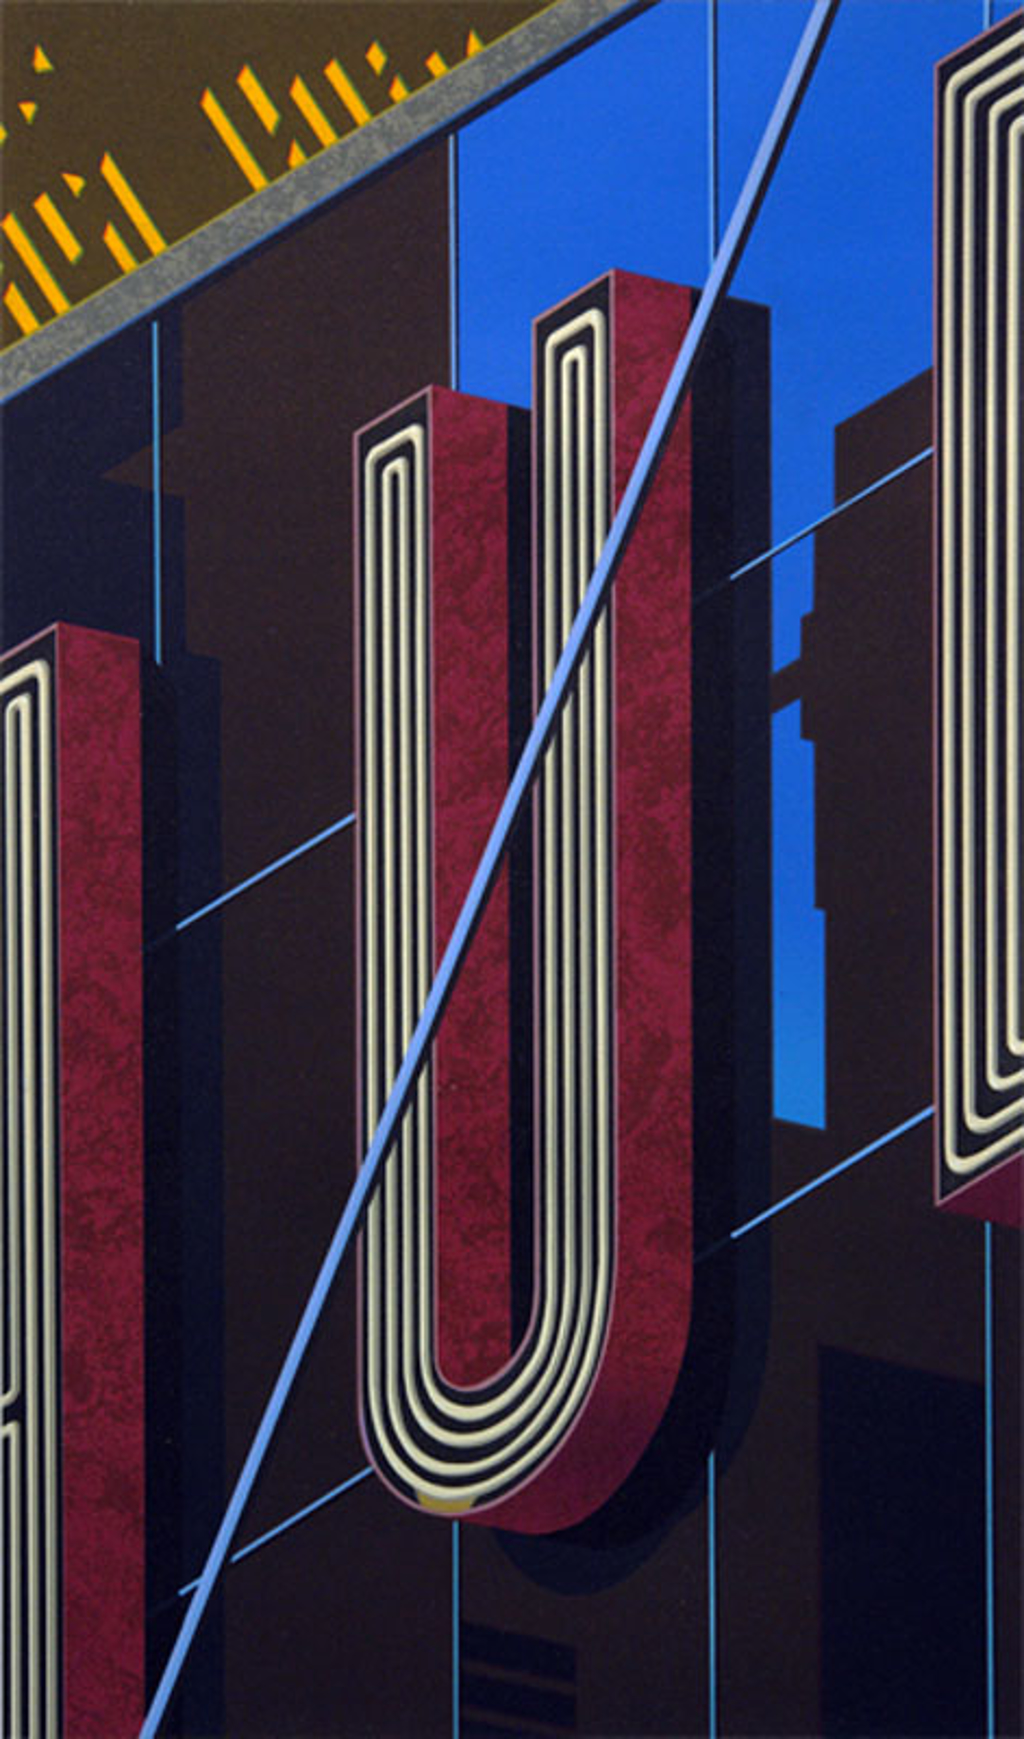 An American Alphabet: U by Robert Cottingham